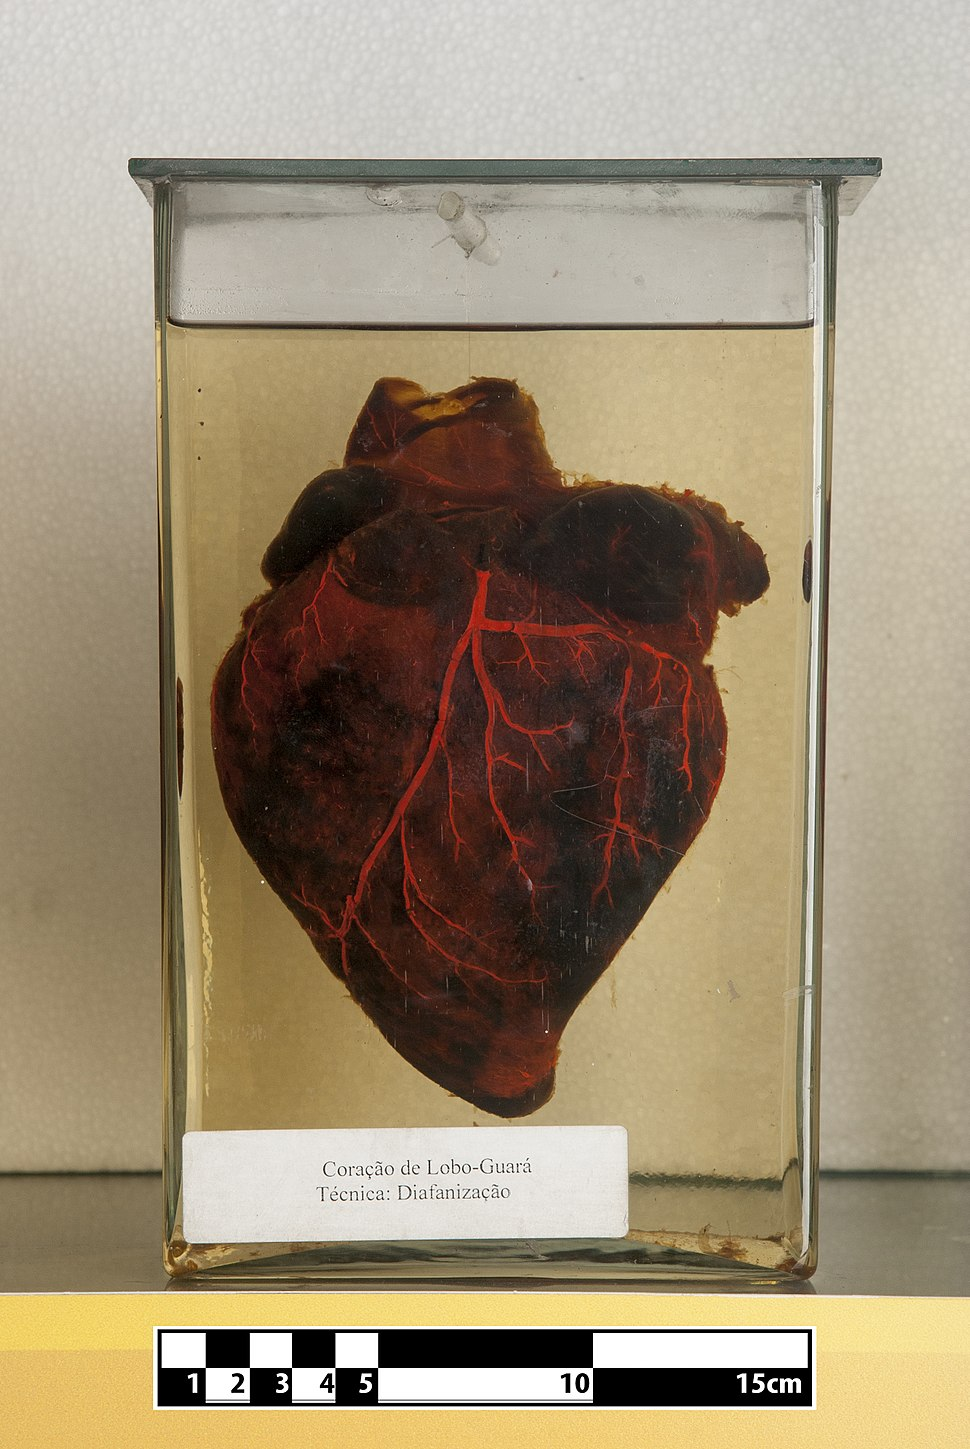 Guara wolf heart (Chrysocyon brachyurus)